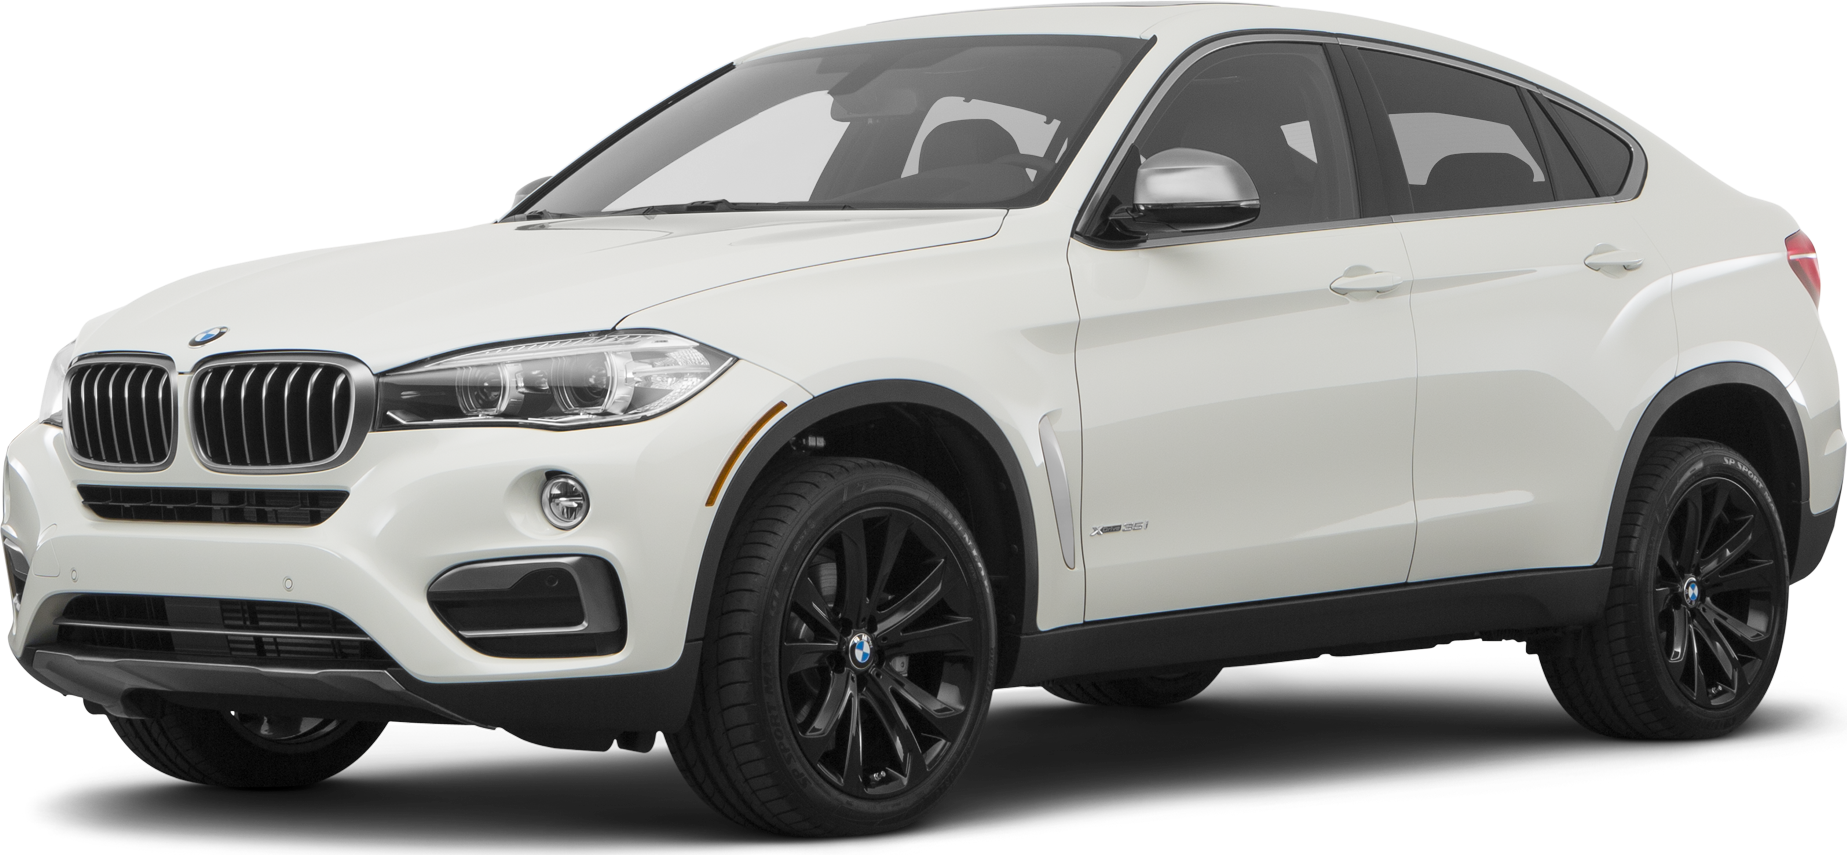 2017 Bmw X6 Values Cars For Sale Kelley Blue Book